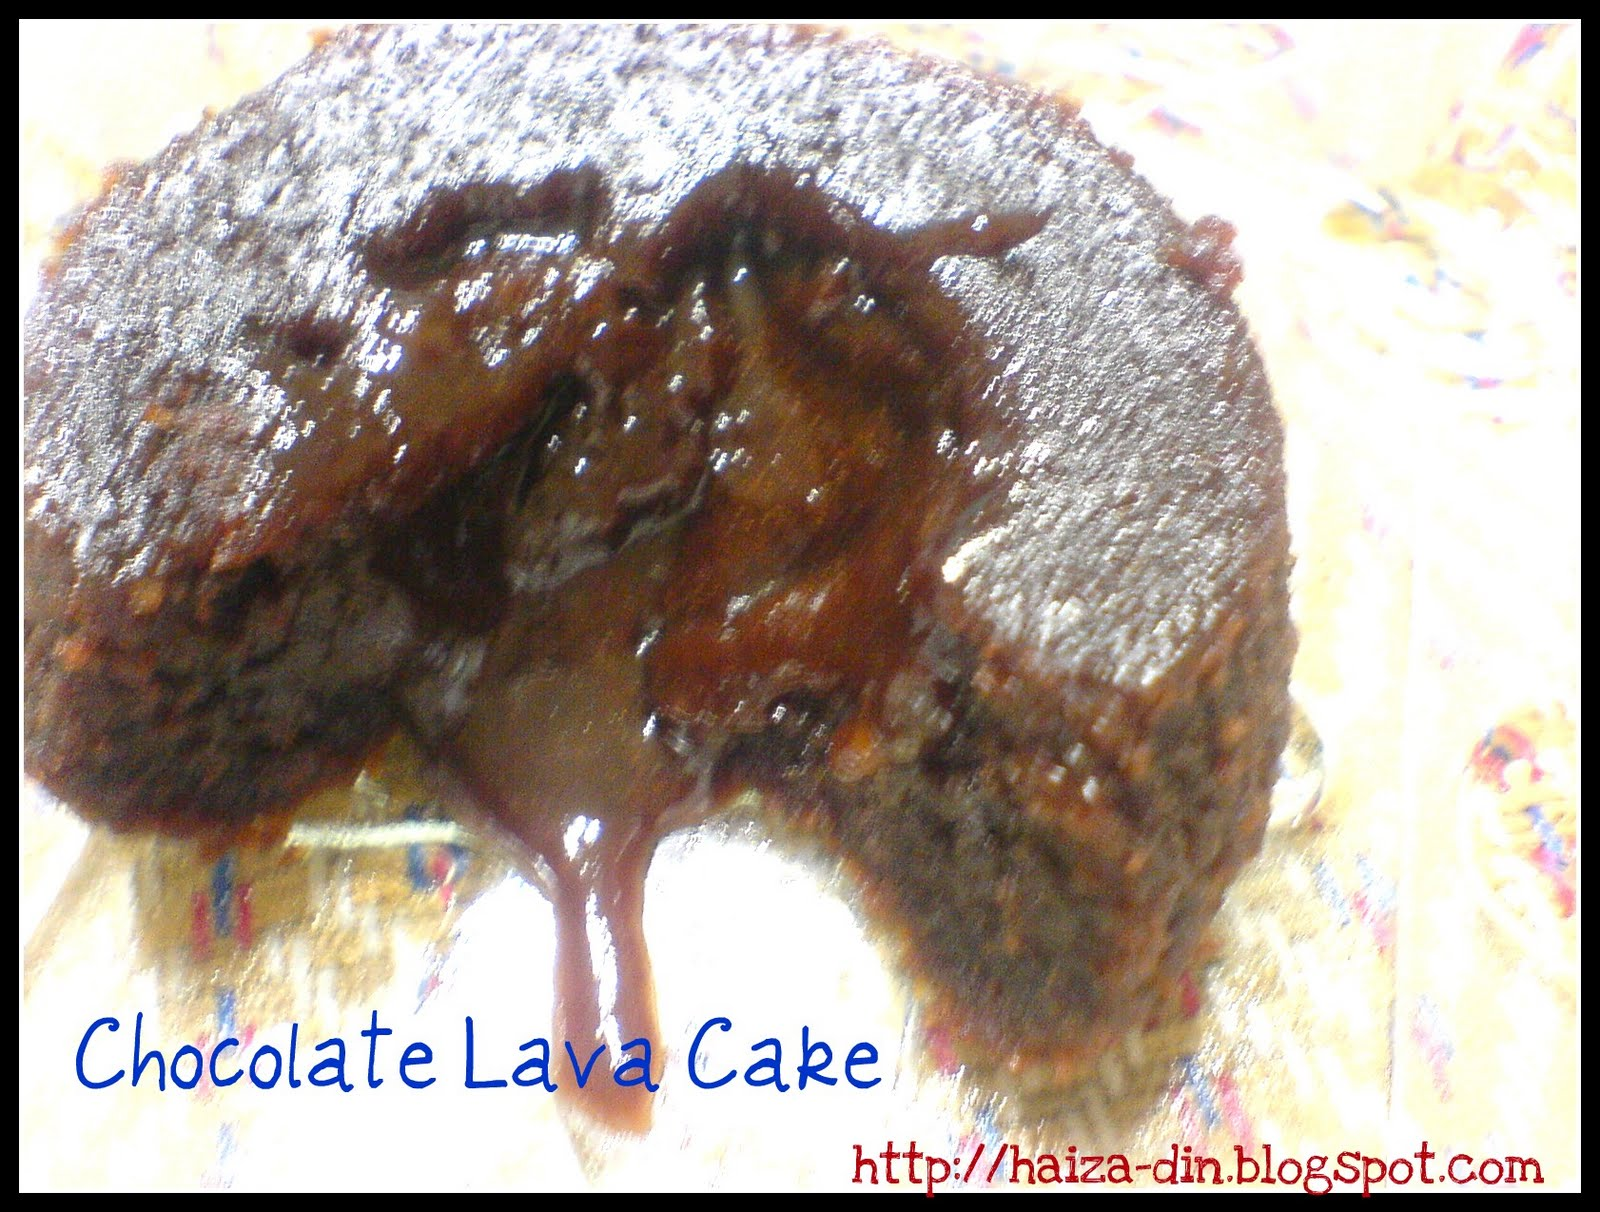 CoOkInG Is LiKe LoVe........: Chocolate Lava Cake